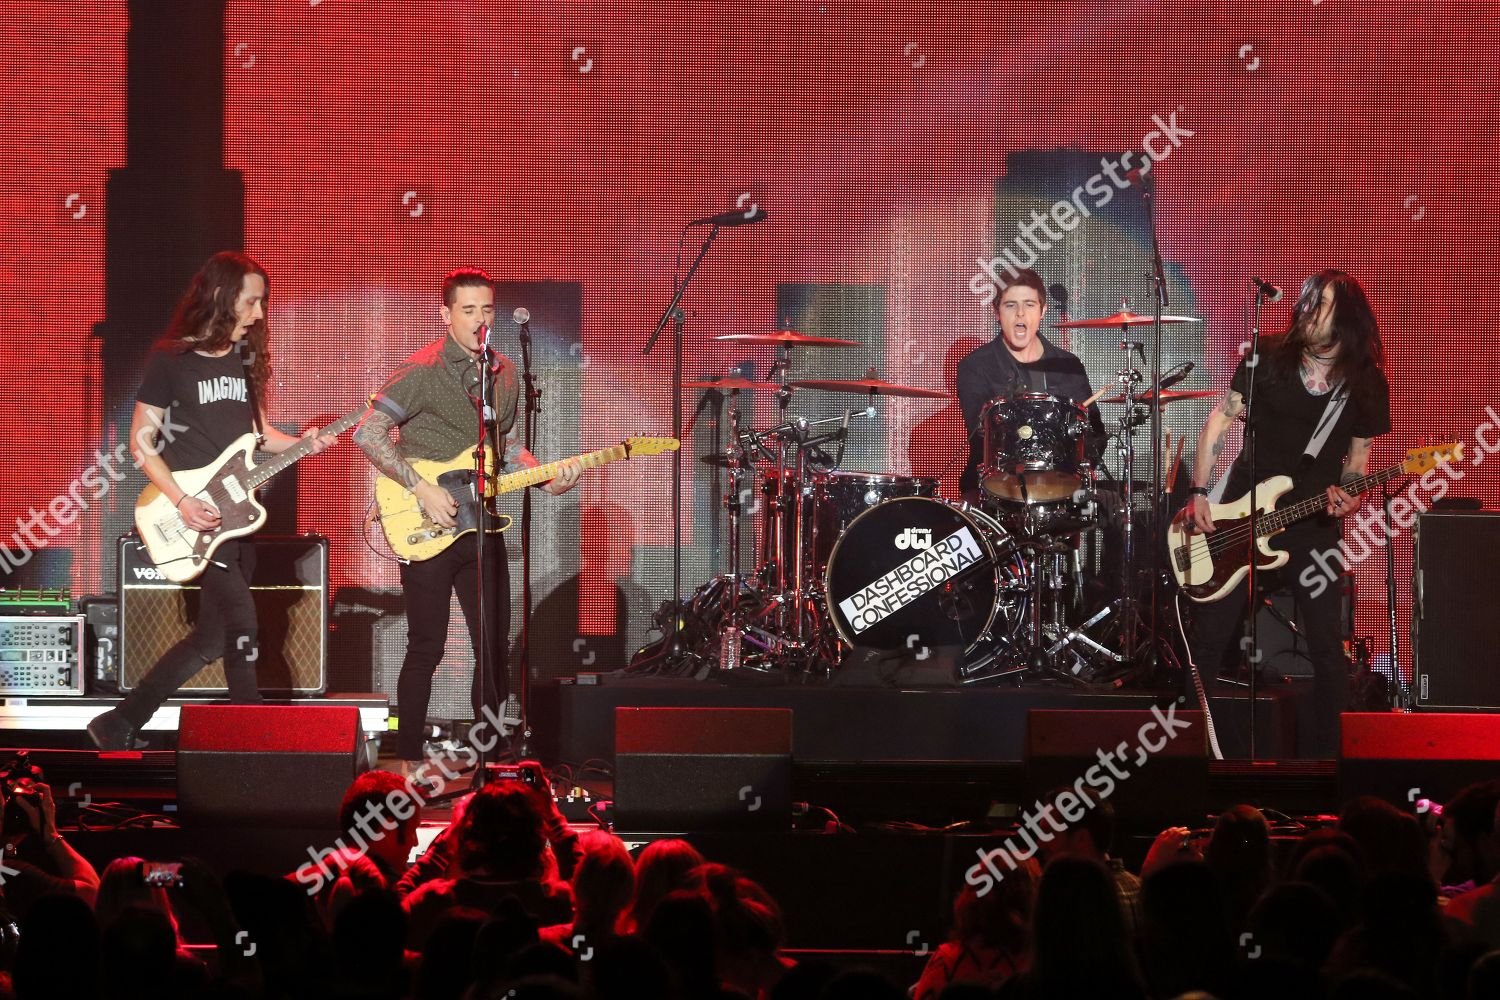 Rock band Dashboard Confessional perform on stage Editorial